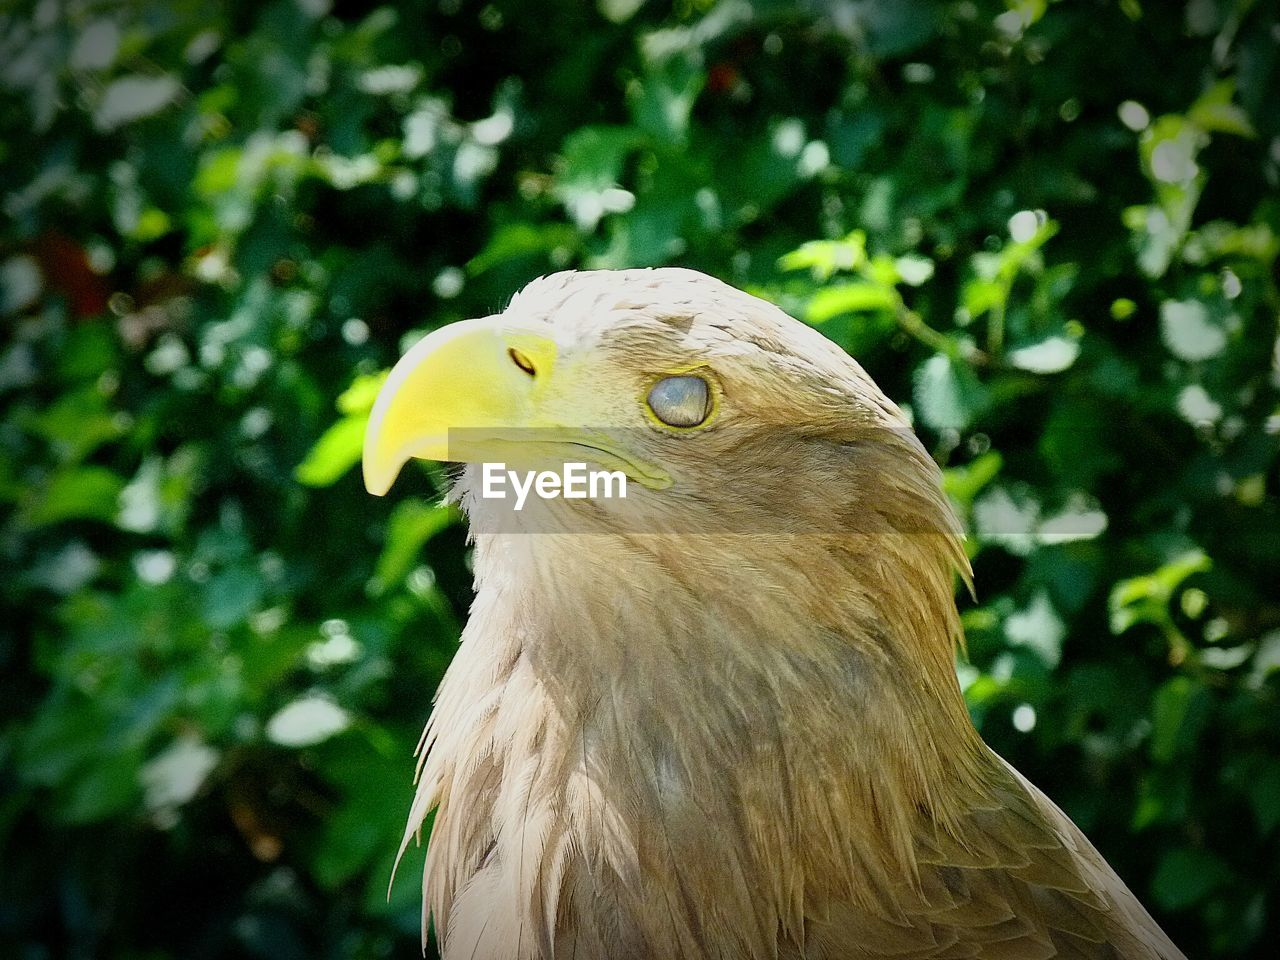 Close-Up Of Eagle Against Plants